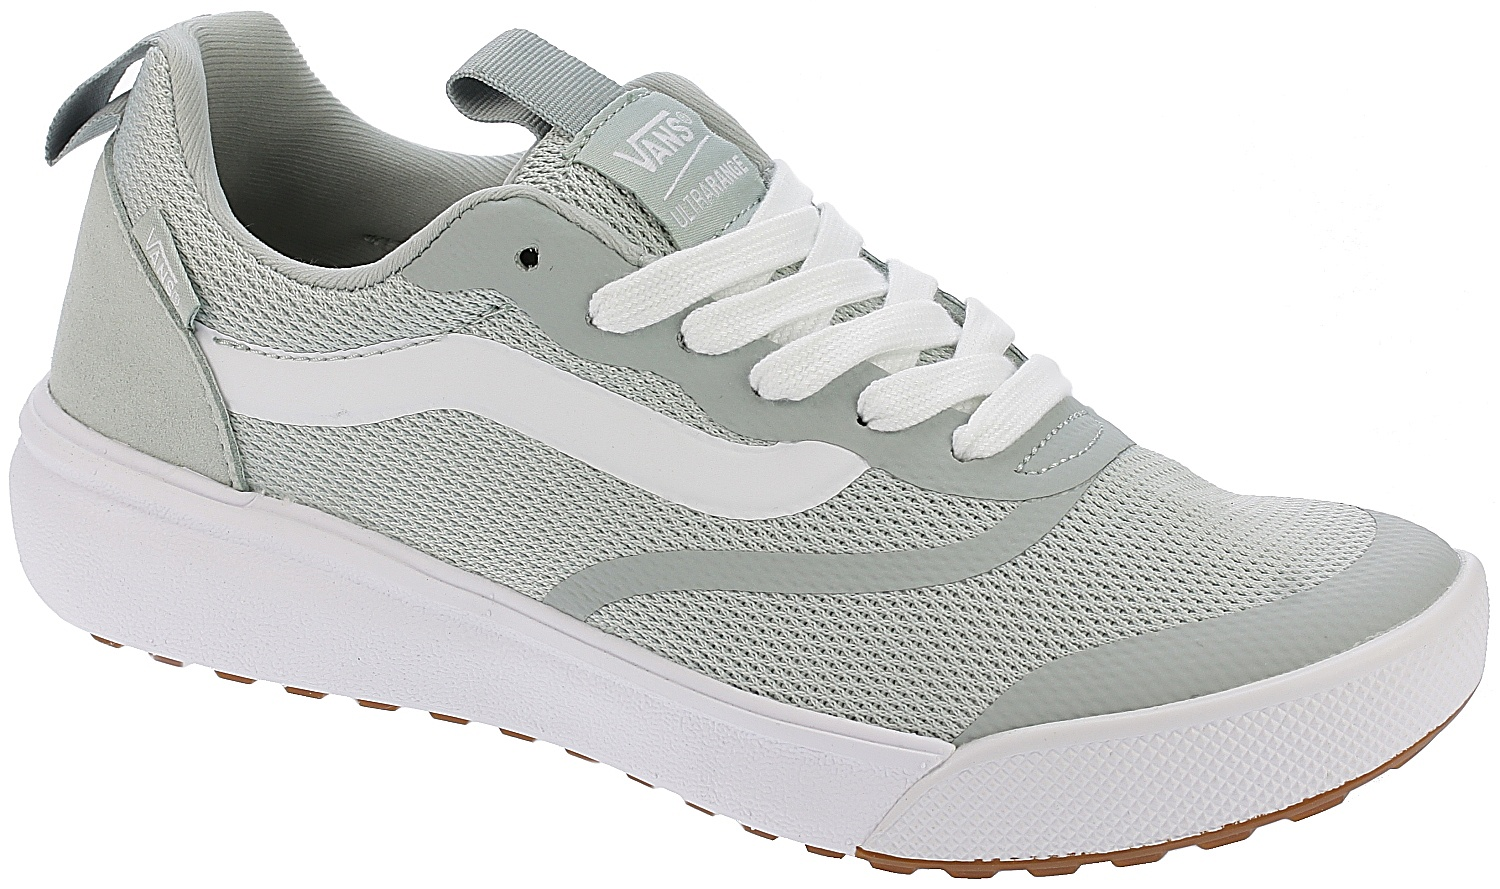 70902ef8c872f3 Buy 2 OFF ANY vans ultrarange rapidweld white CASE AND GET 70% OFF!